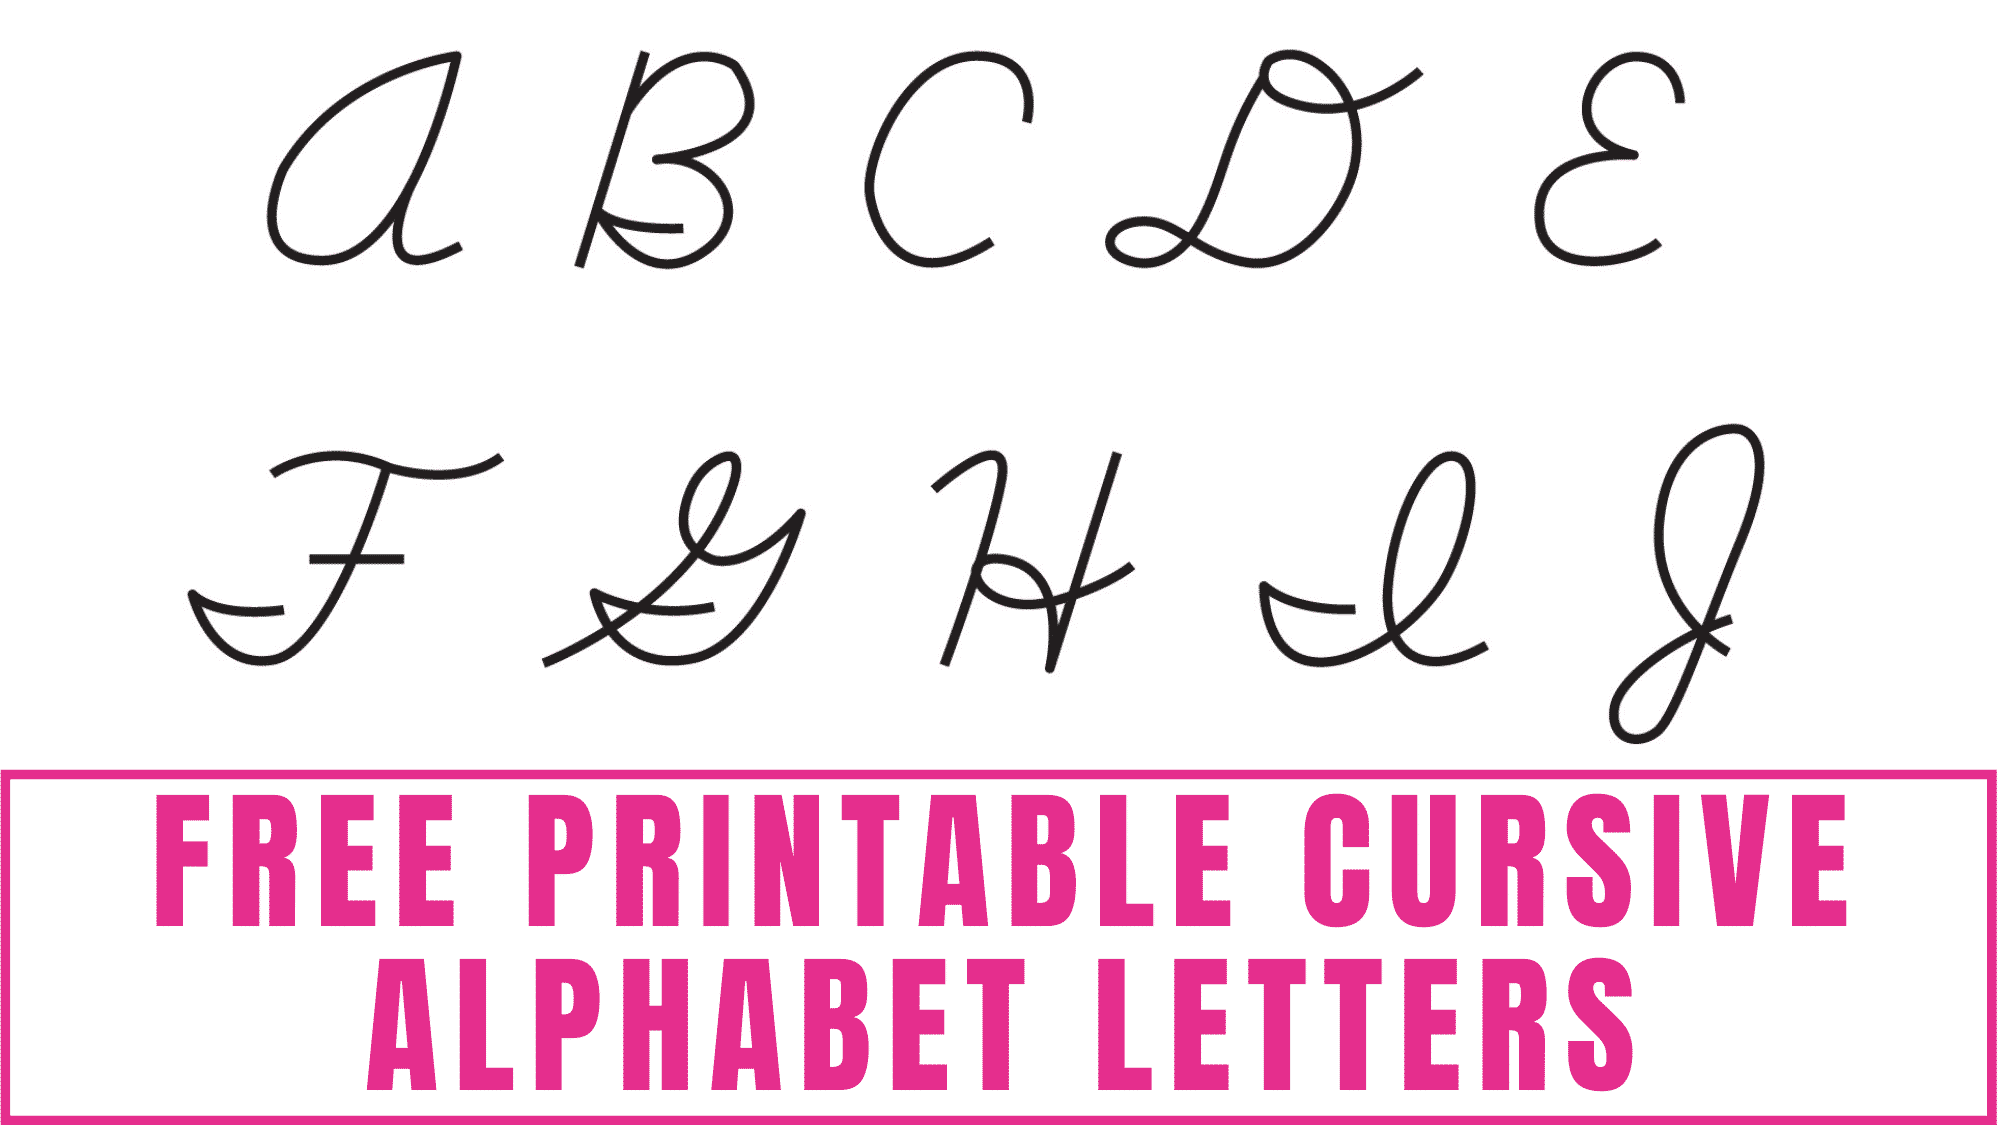 Looking for cursive practice worksheets to help your kid learn cursive writing? These letters aren't technically cursive practice sheets but you can turn them into cursive tracing worksheets by tracing these free printable cursive alphabet letters.